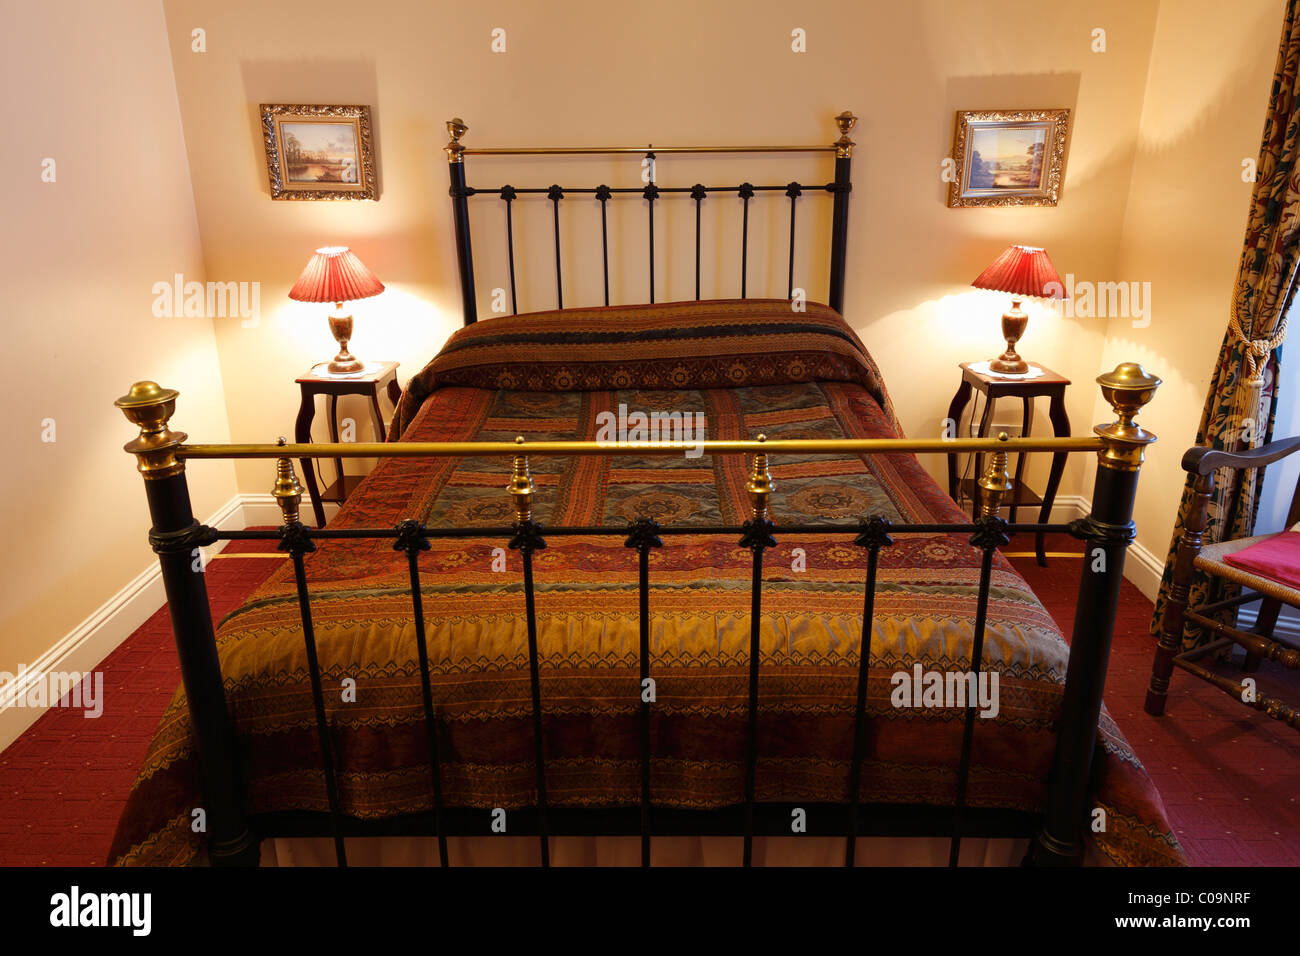 Double bed in the Bed and Breakfast Olde Bakery, Kinsale, County Cork, Republic of Ireland, British Isles, Europe Stock Photo